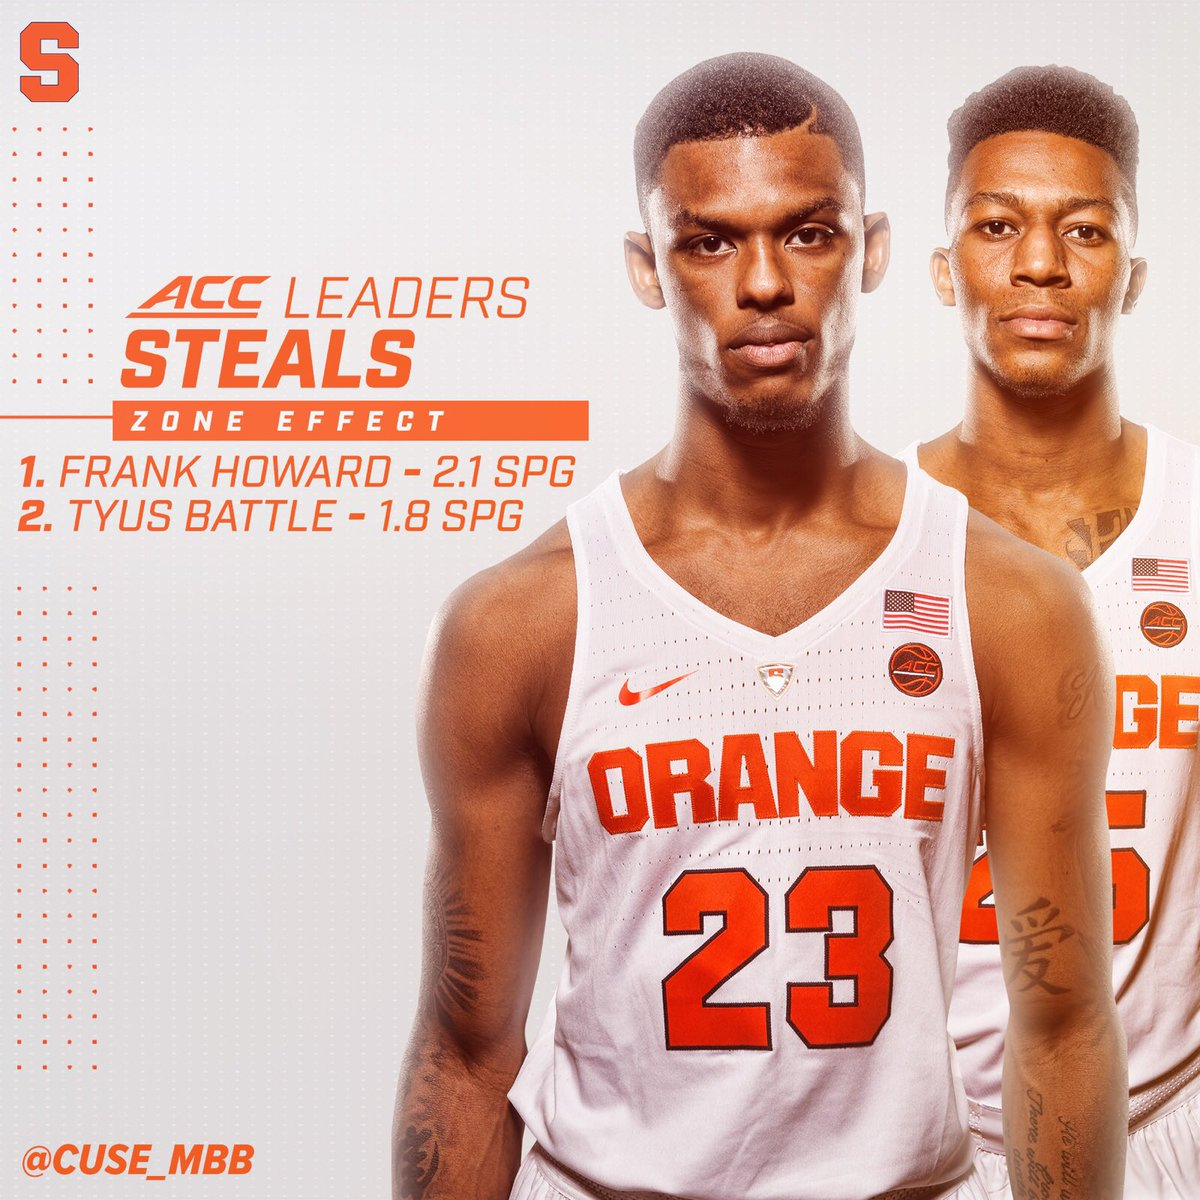 RT @Cuse_MBB: Top of the zone stays active 💪  'Cuse leads the ACC in steals this season. #ZoneEffect https://t.co/yVvCTXCdL1